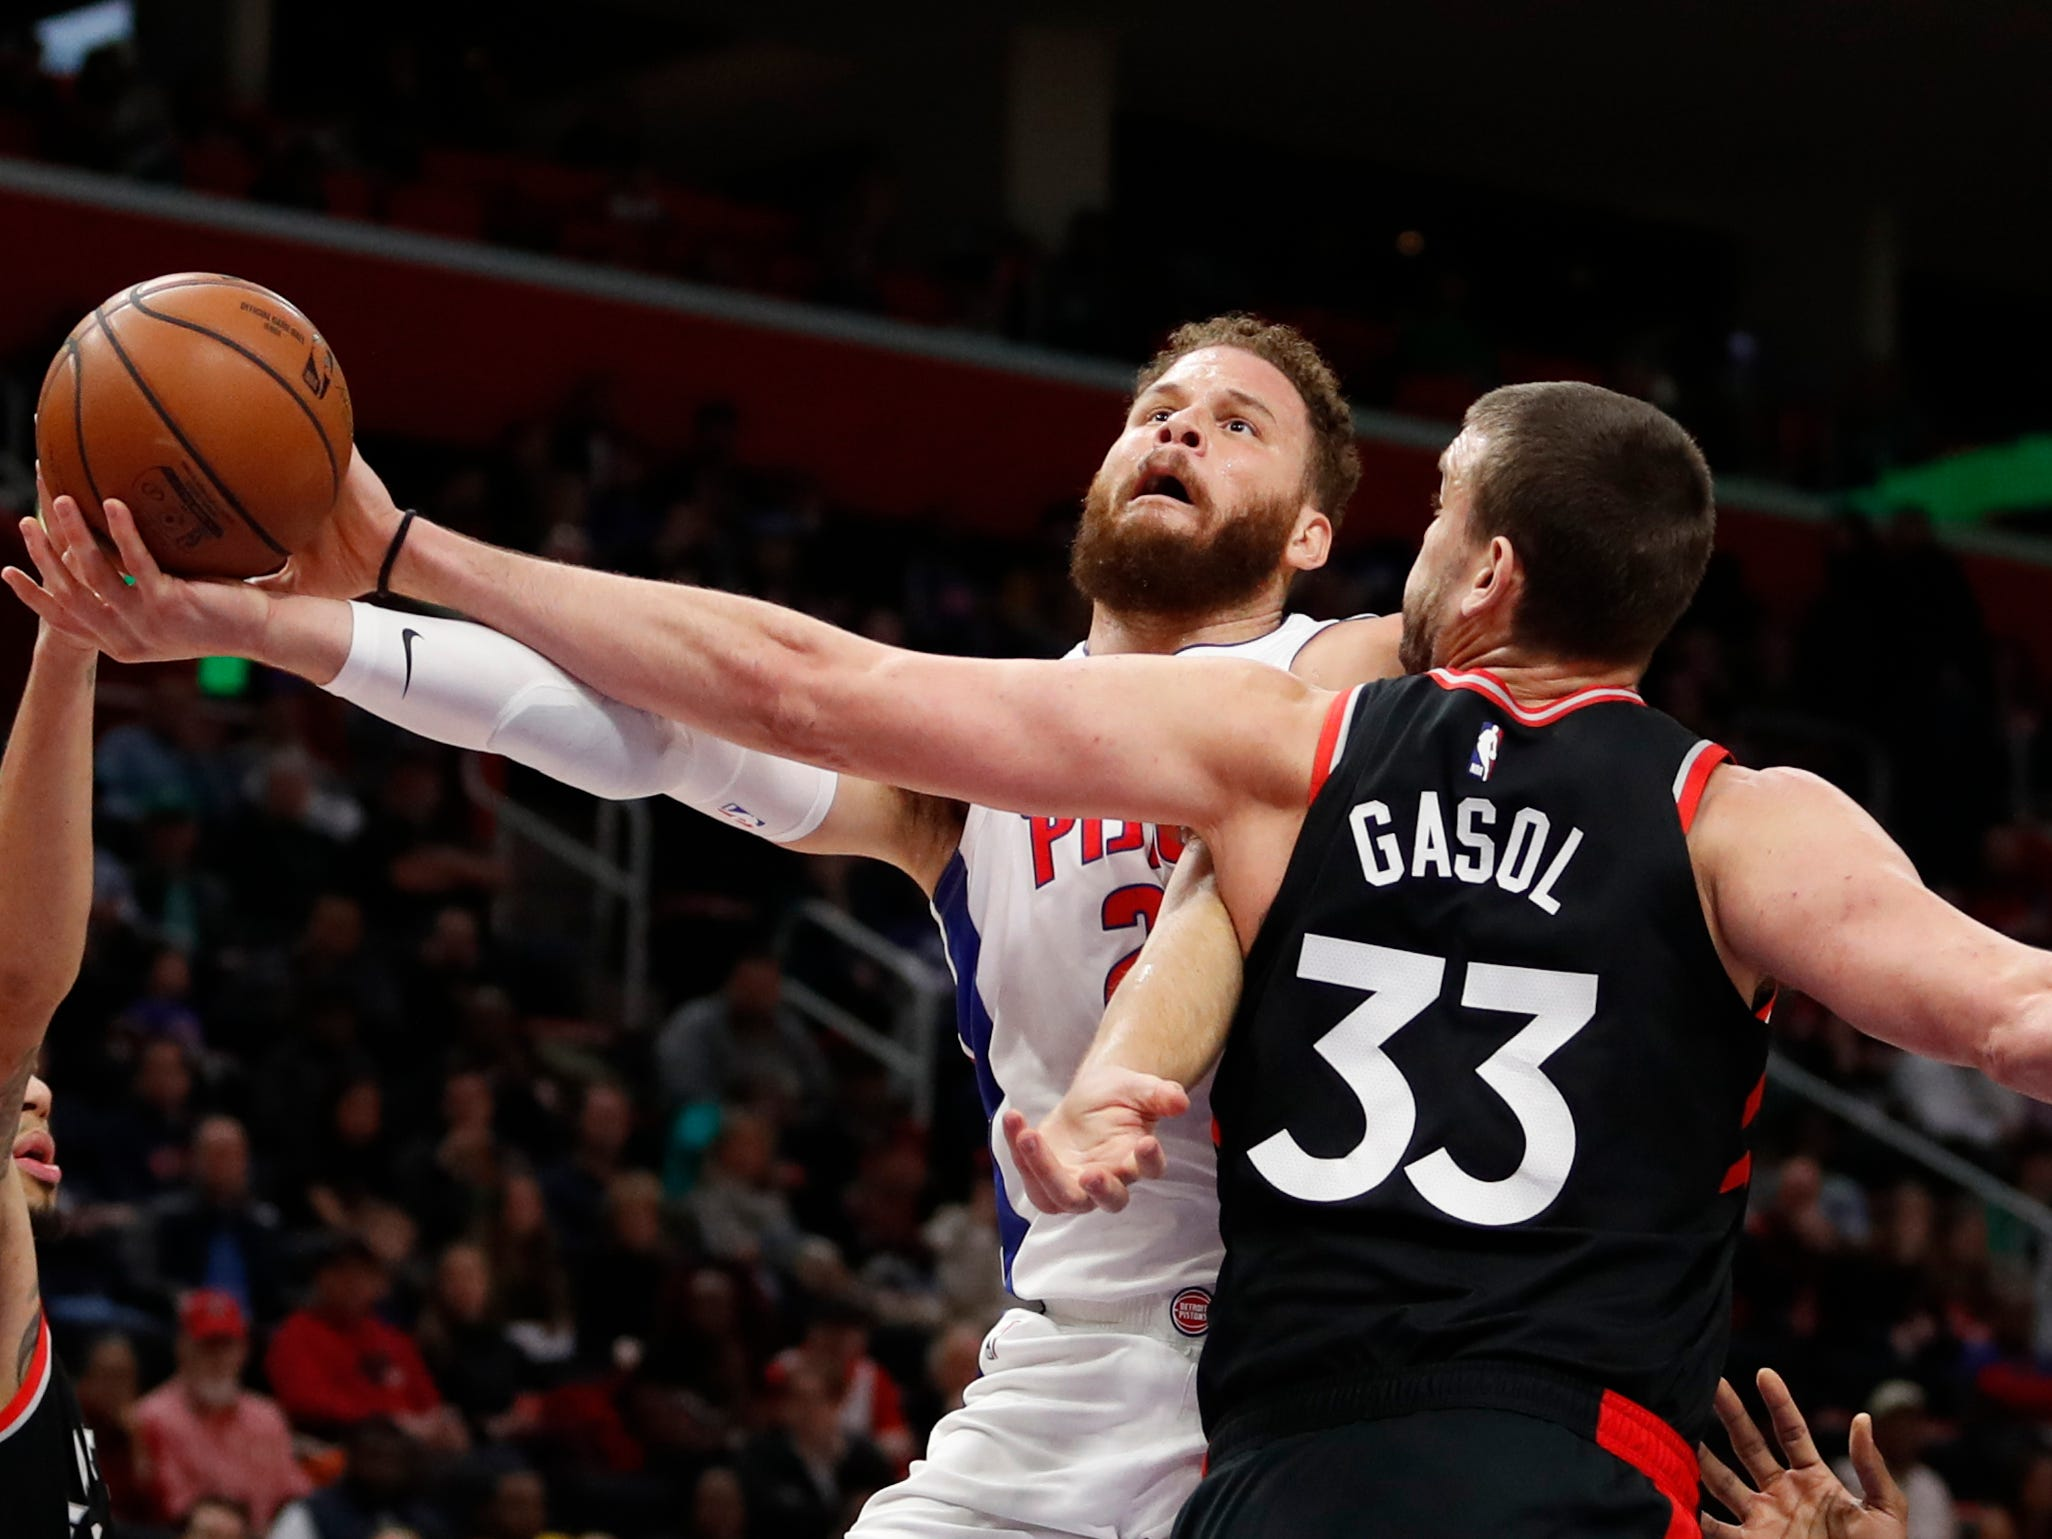 Detroit Pistons forward Blake Griffin goes up for a shot against Toronto Raptors center Marc Gasol and guard Danny Green during the first quarter at Little Caesars Arena, March 17, 2019, in Detroit.